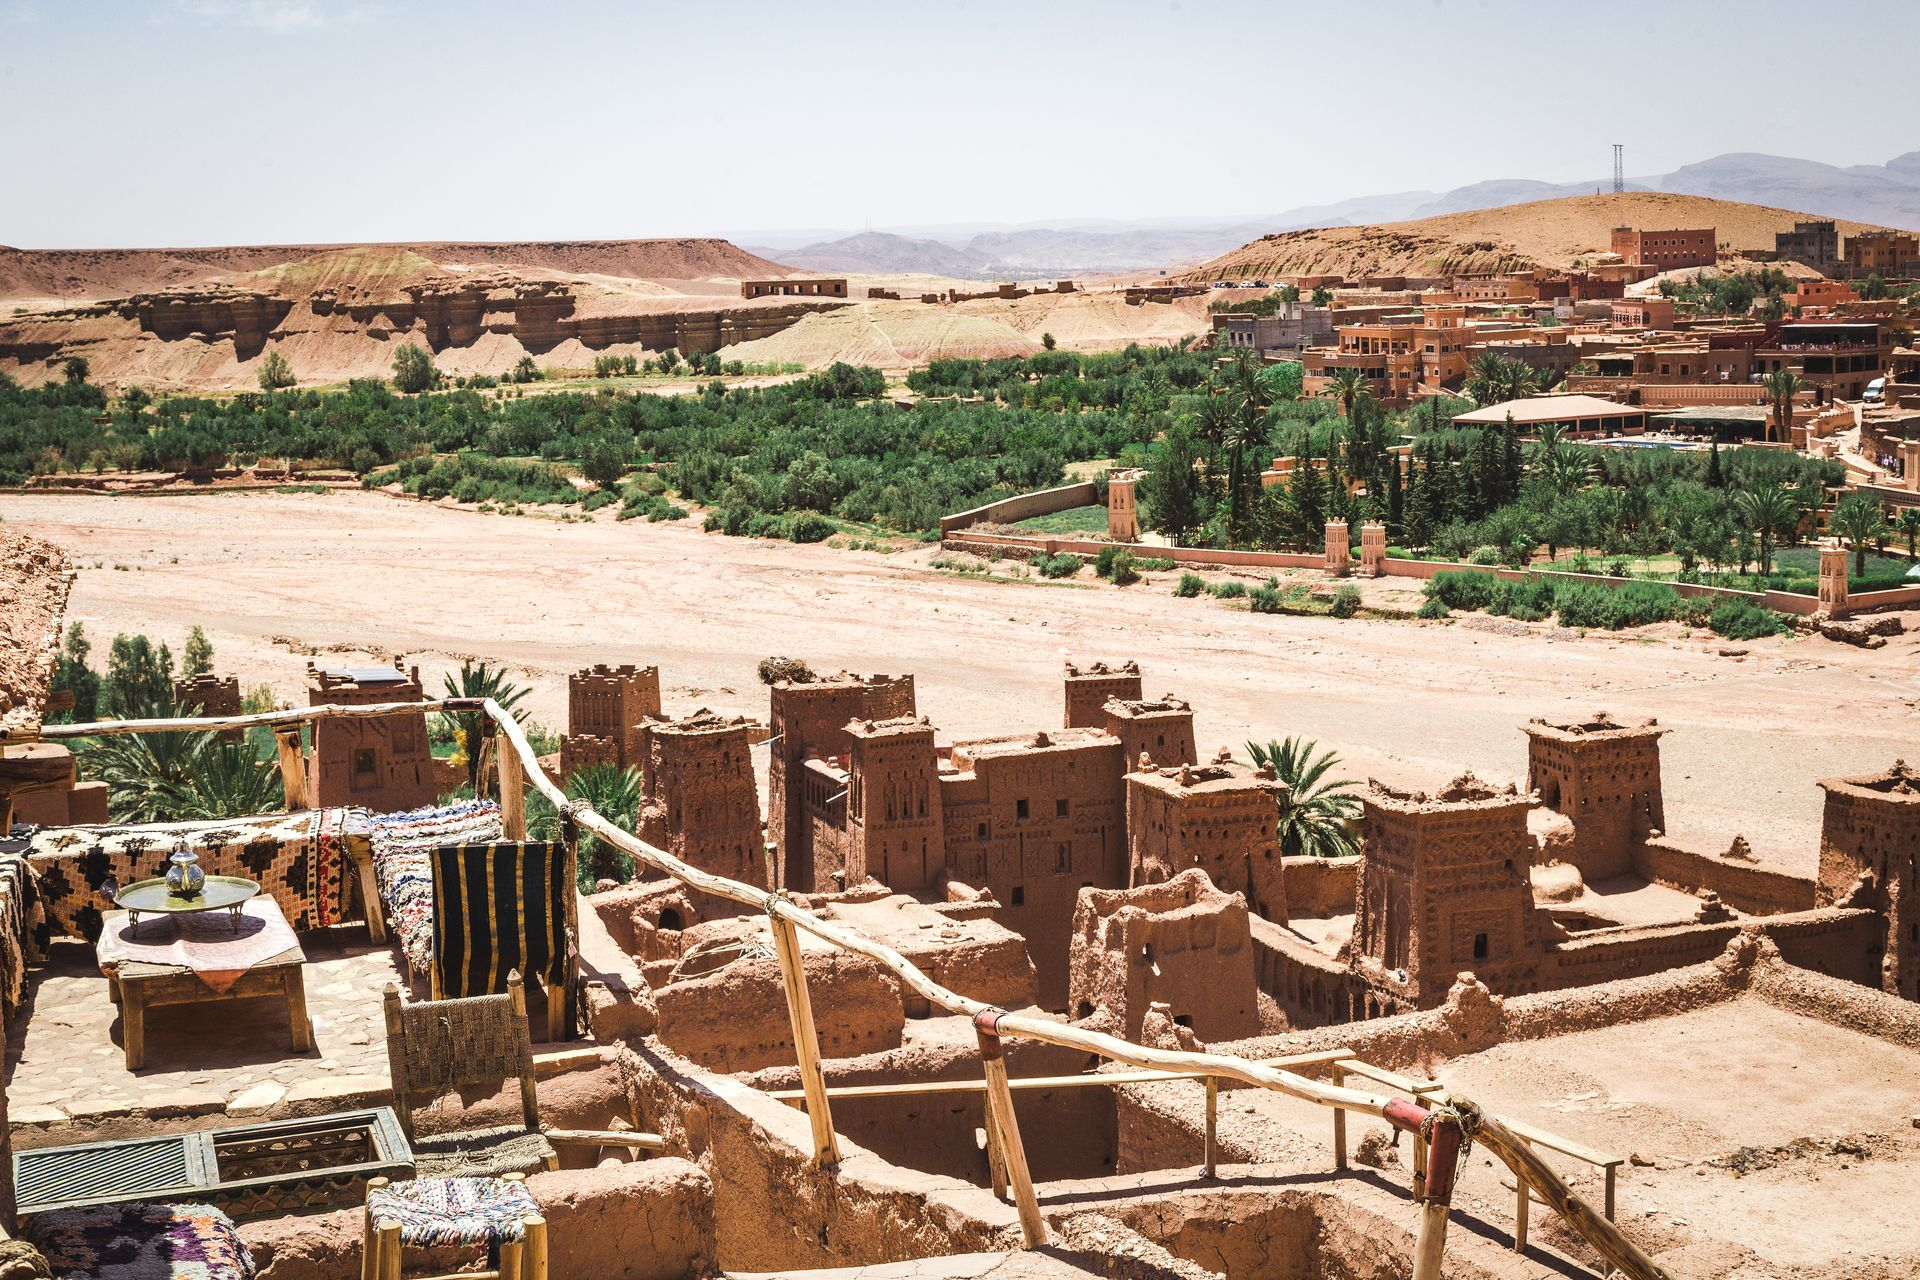 travel agency Marrakech Desert Morocco,3 days from marrakech to desert